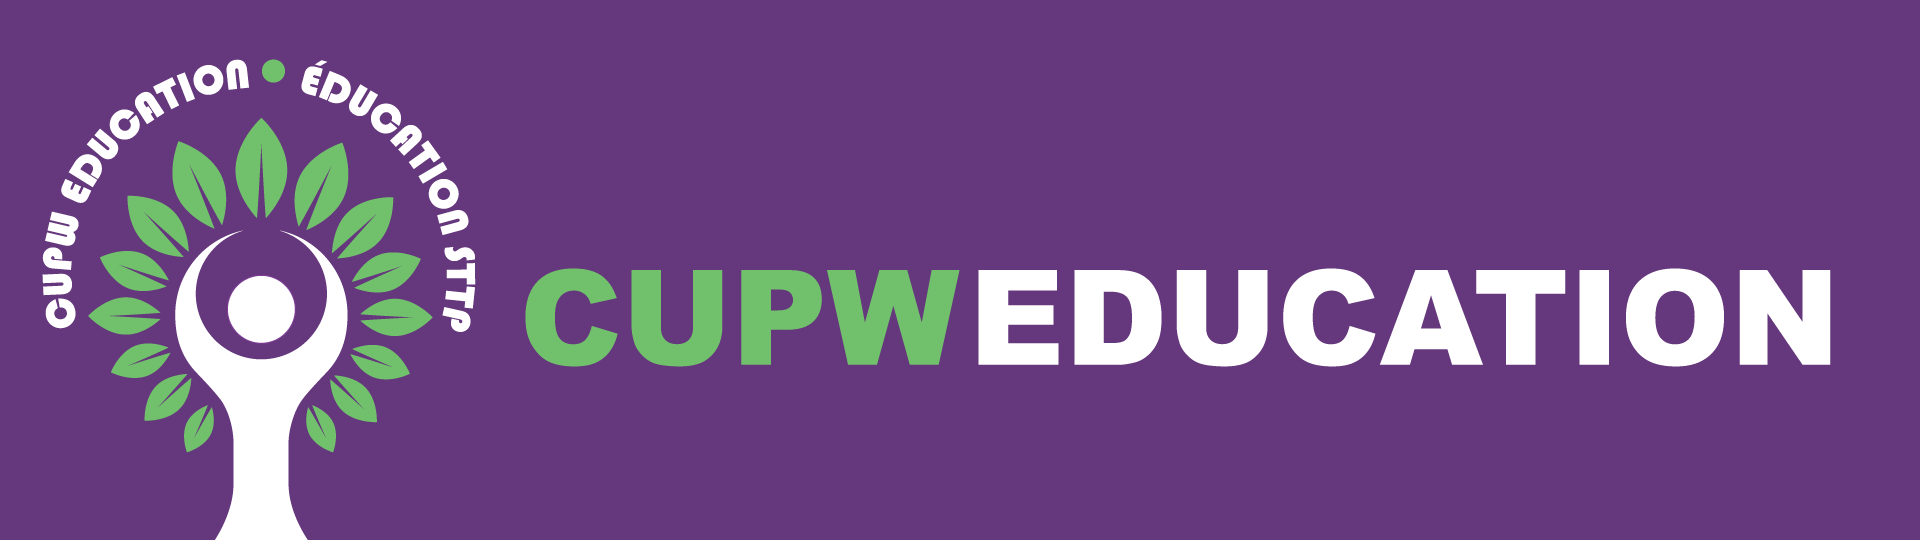 CUPW Education